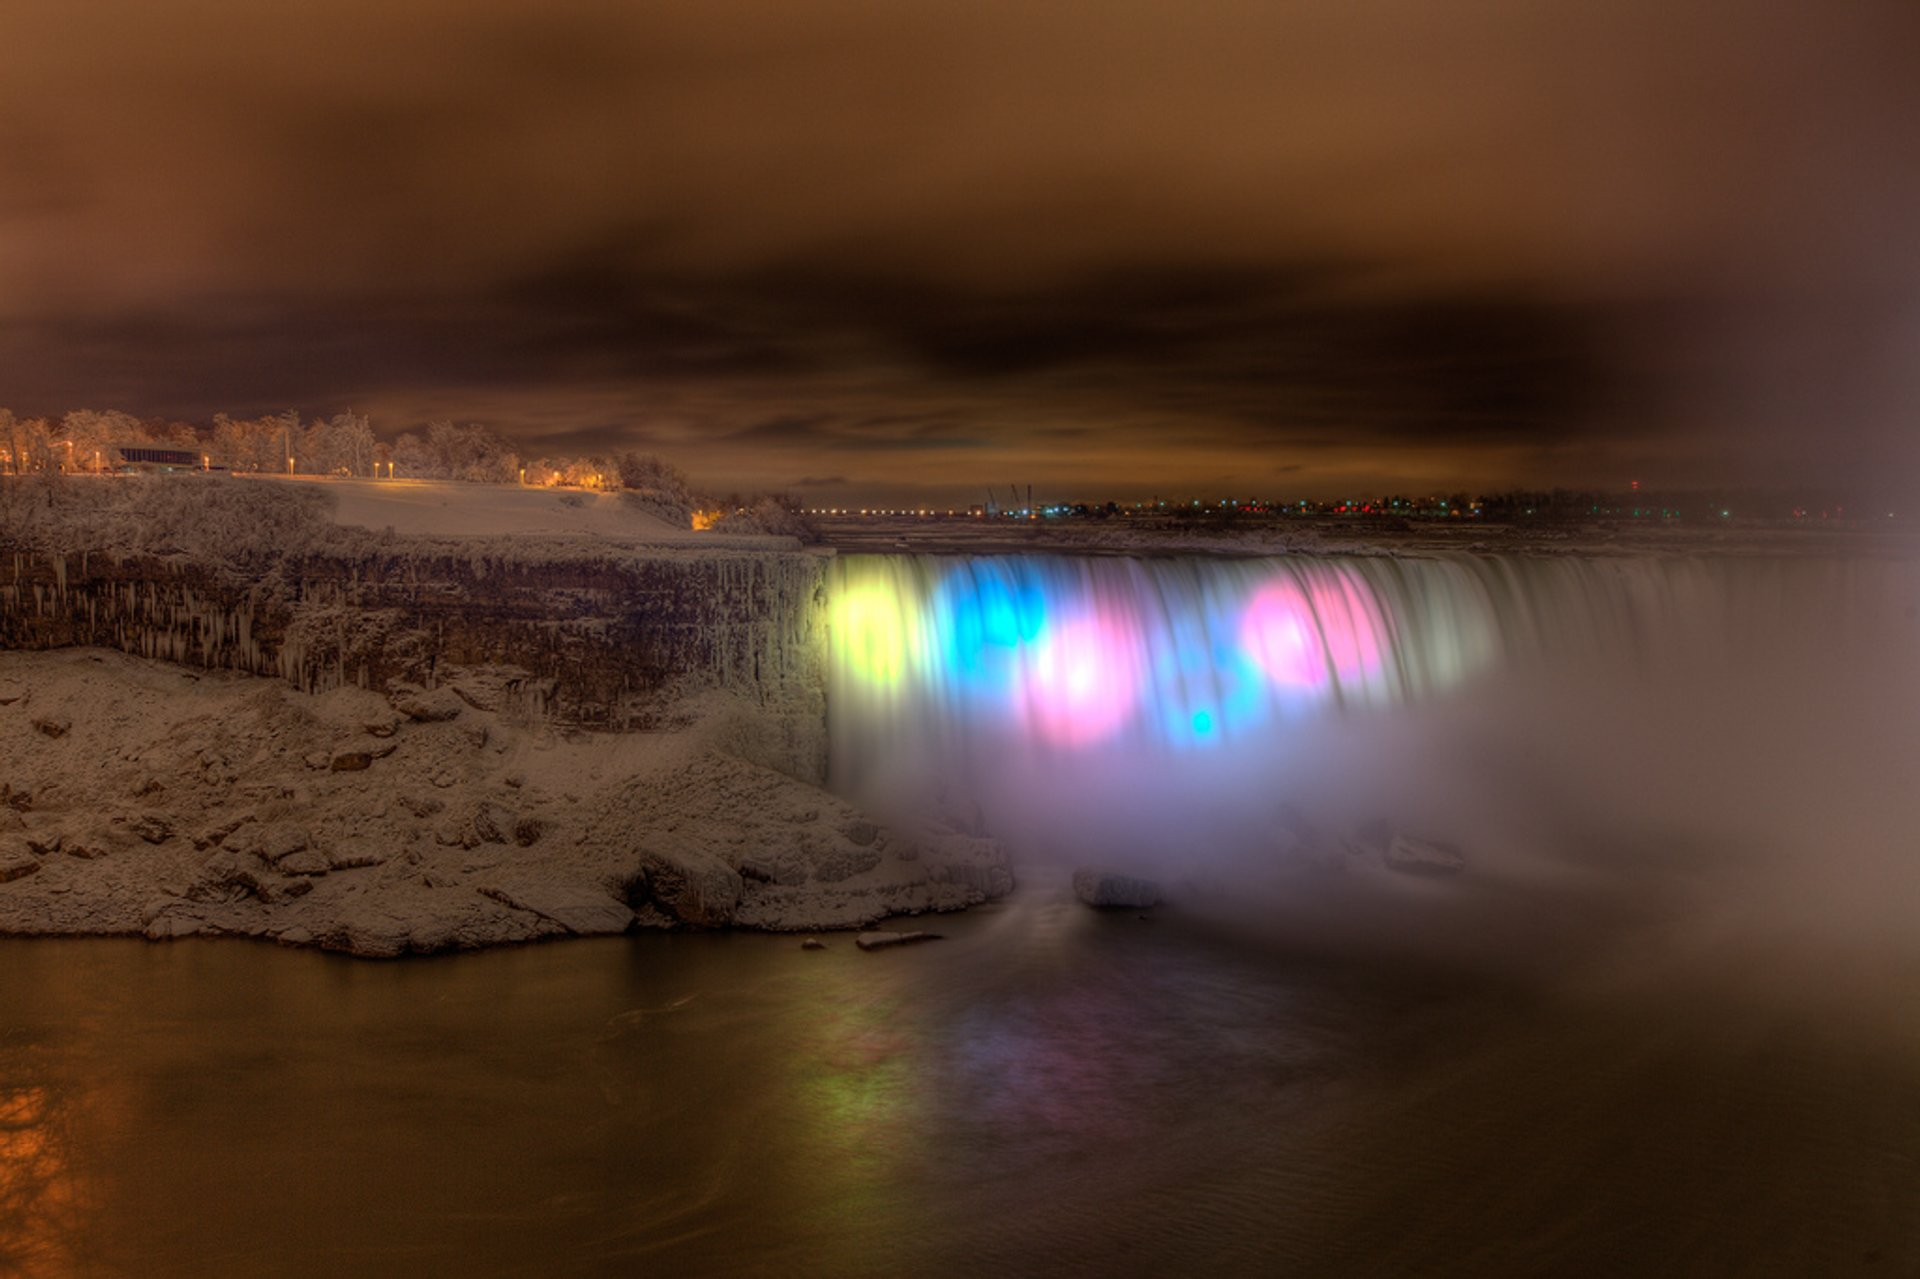 Winter Festival of Lights in Niagara Falls - Best Season 2020